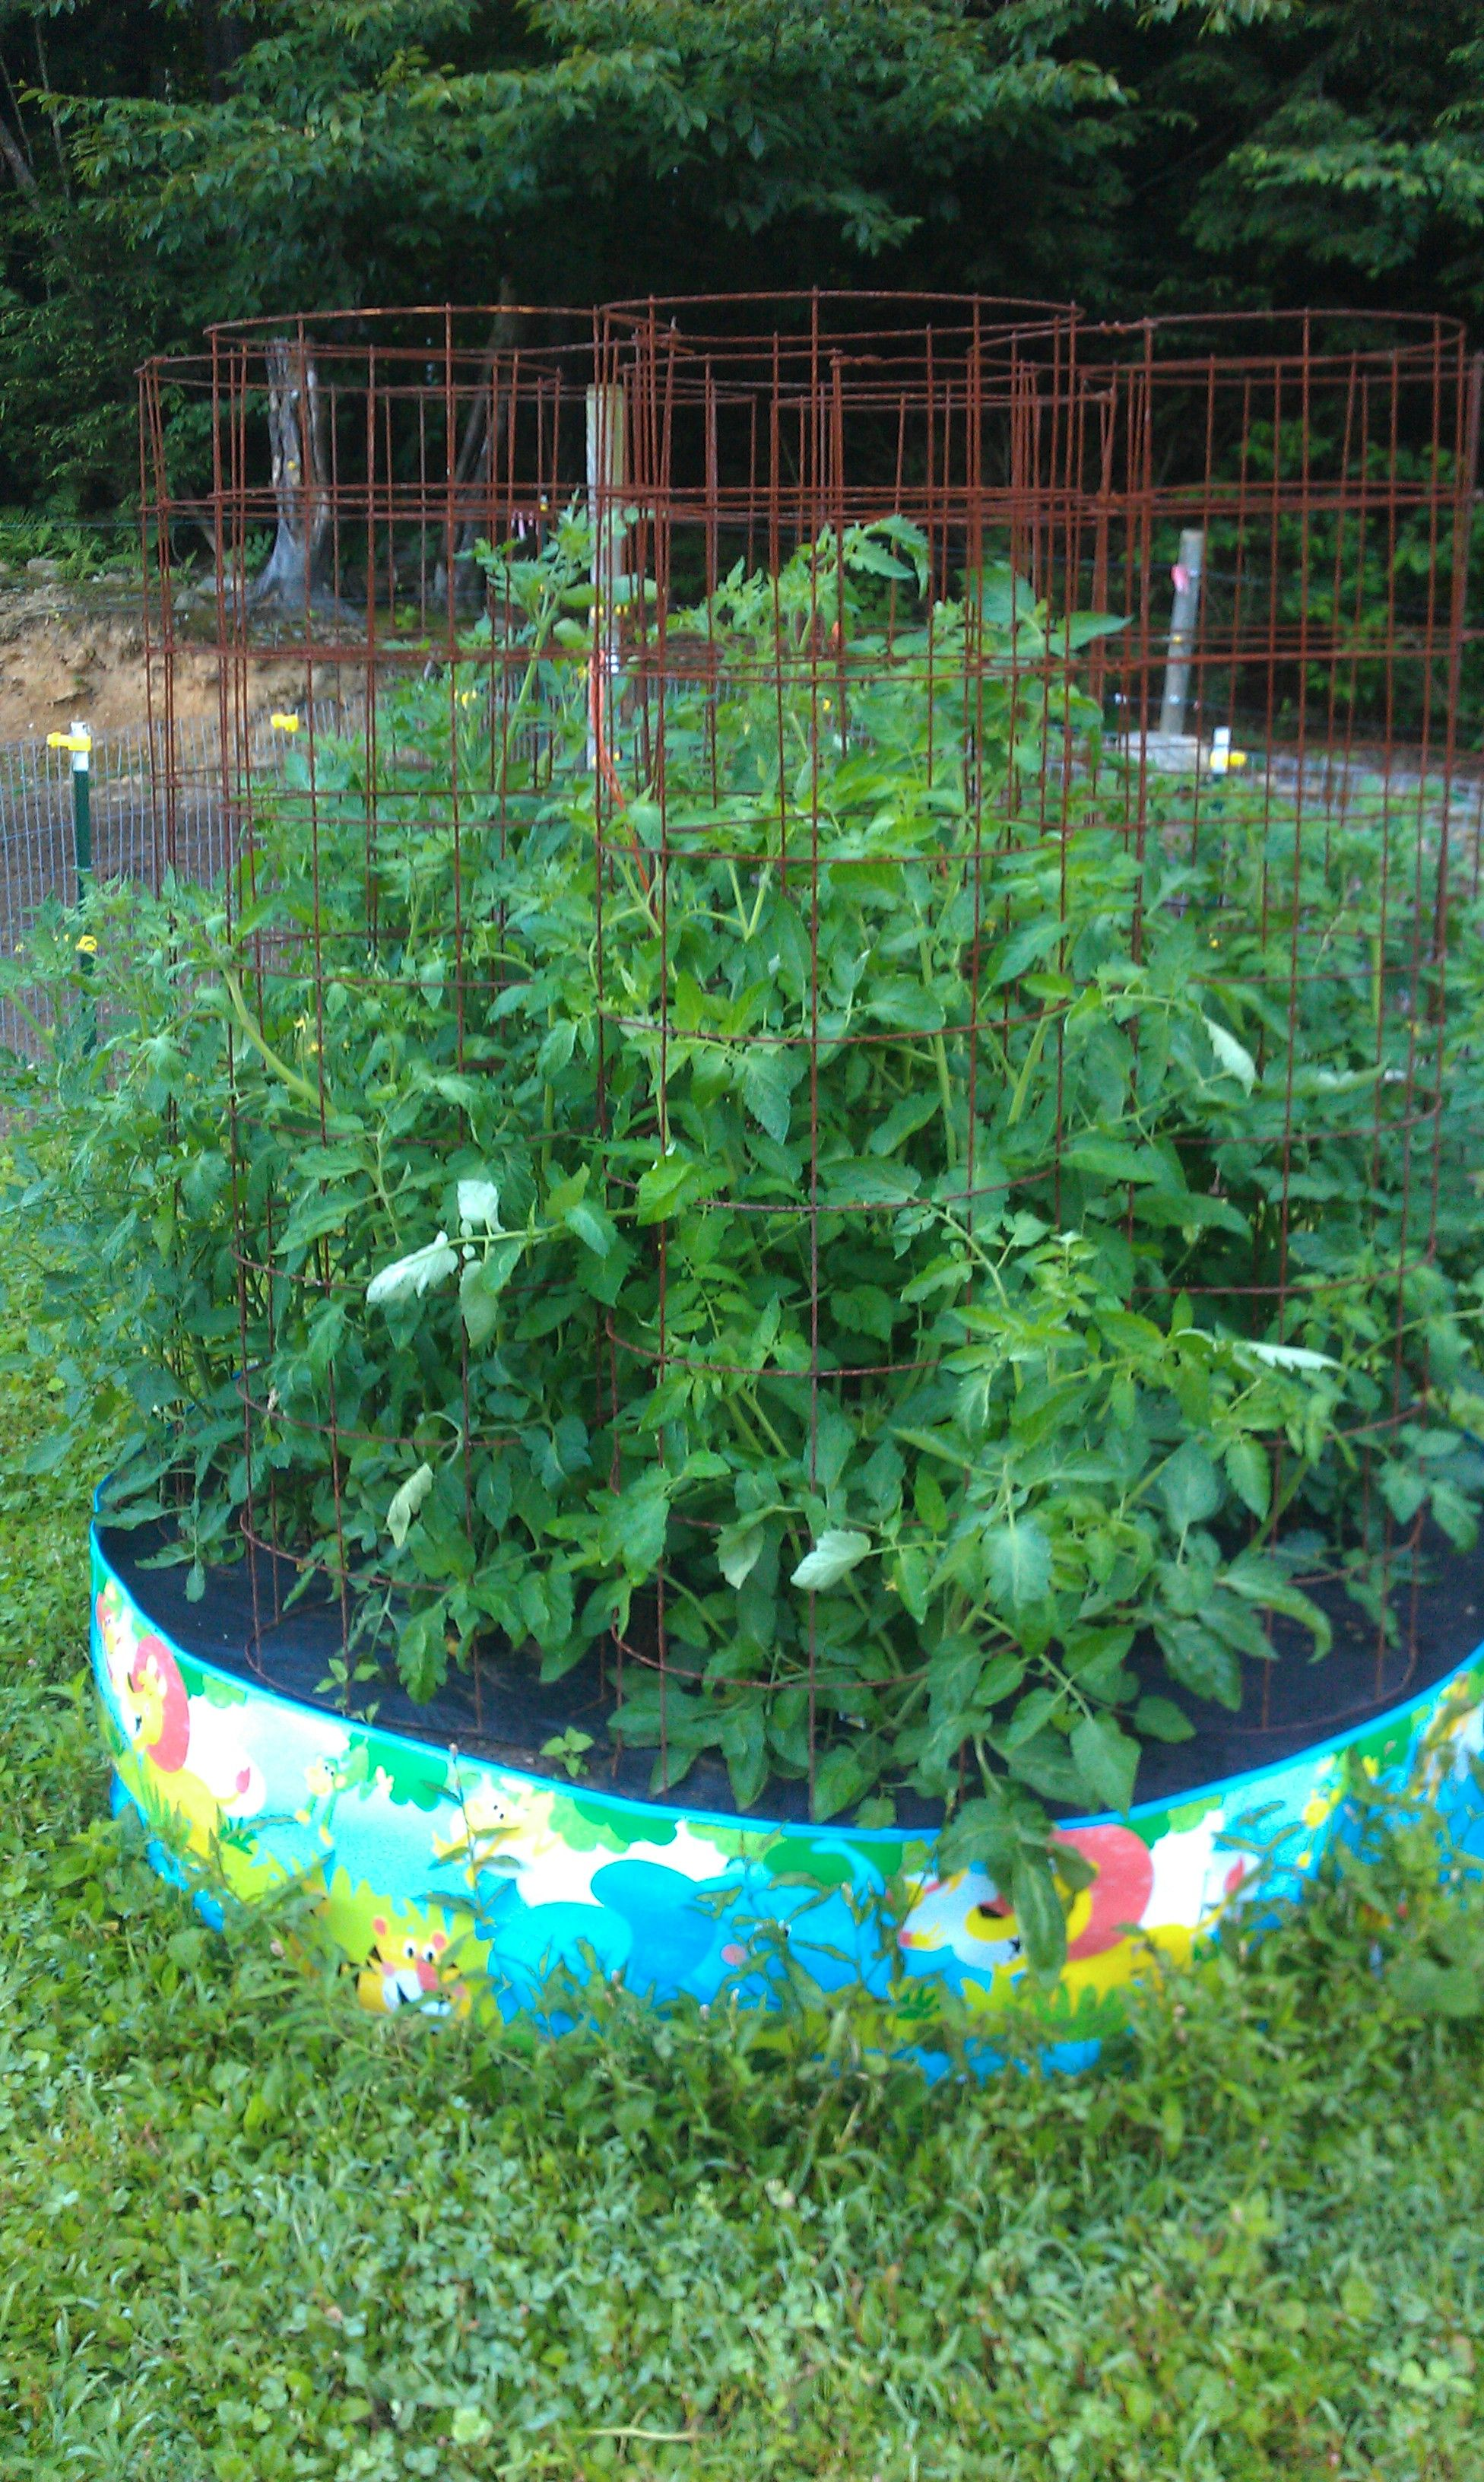 tomato plants in a kiddie pool used for a raised bed garden | for